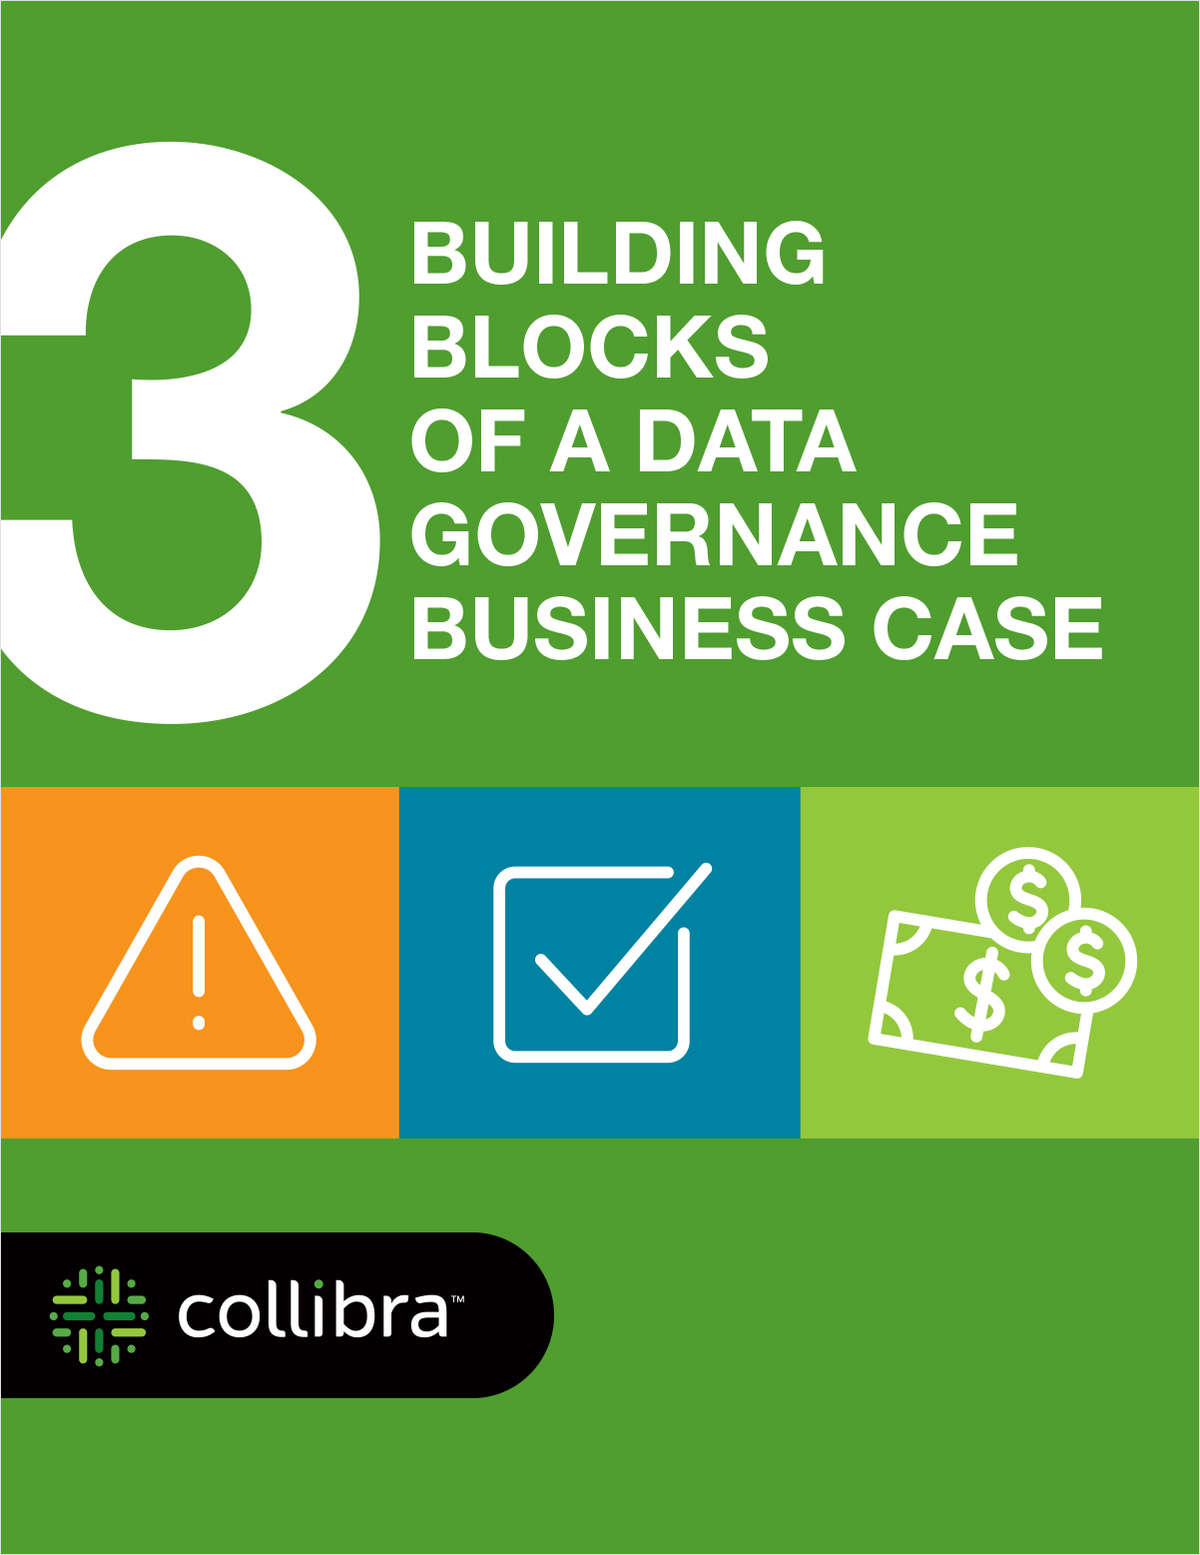 3 Building Blocks of a Data Governance Business Case